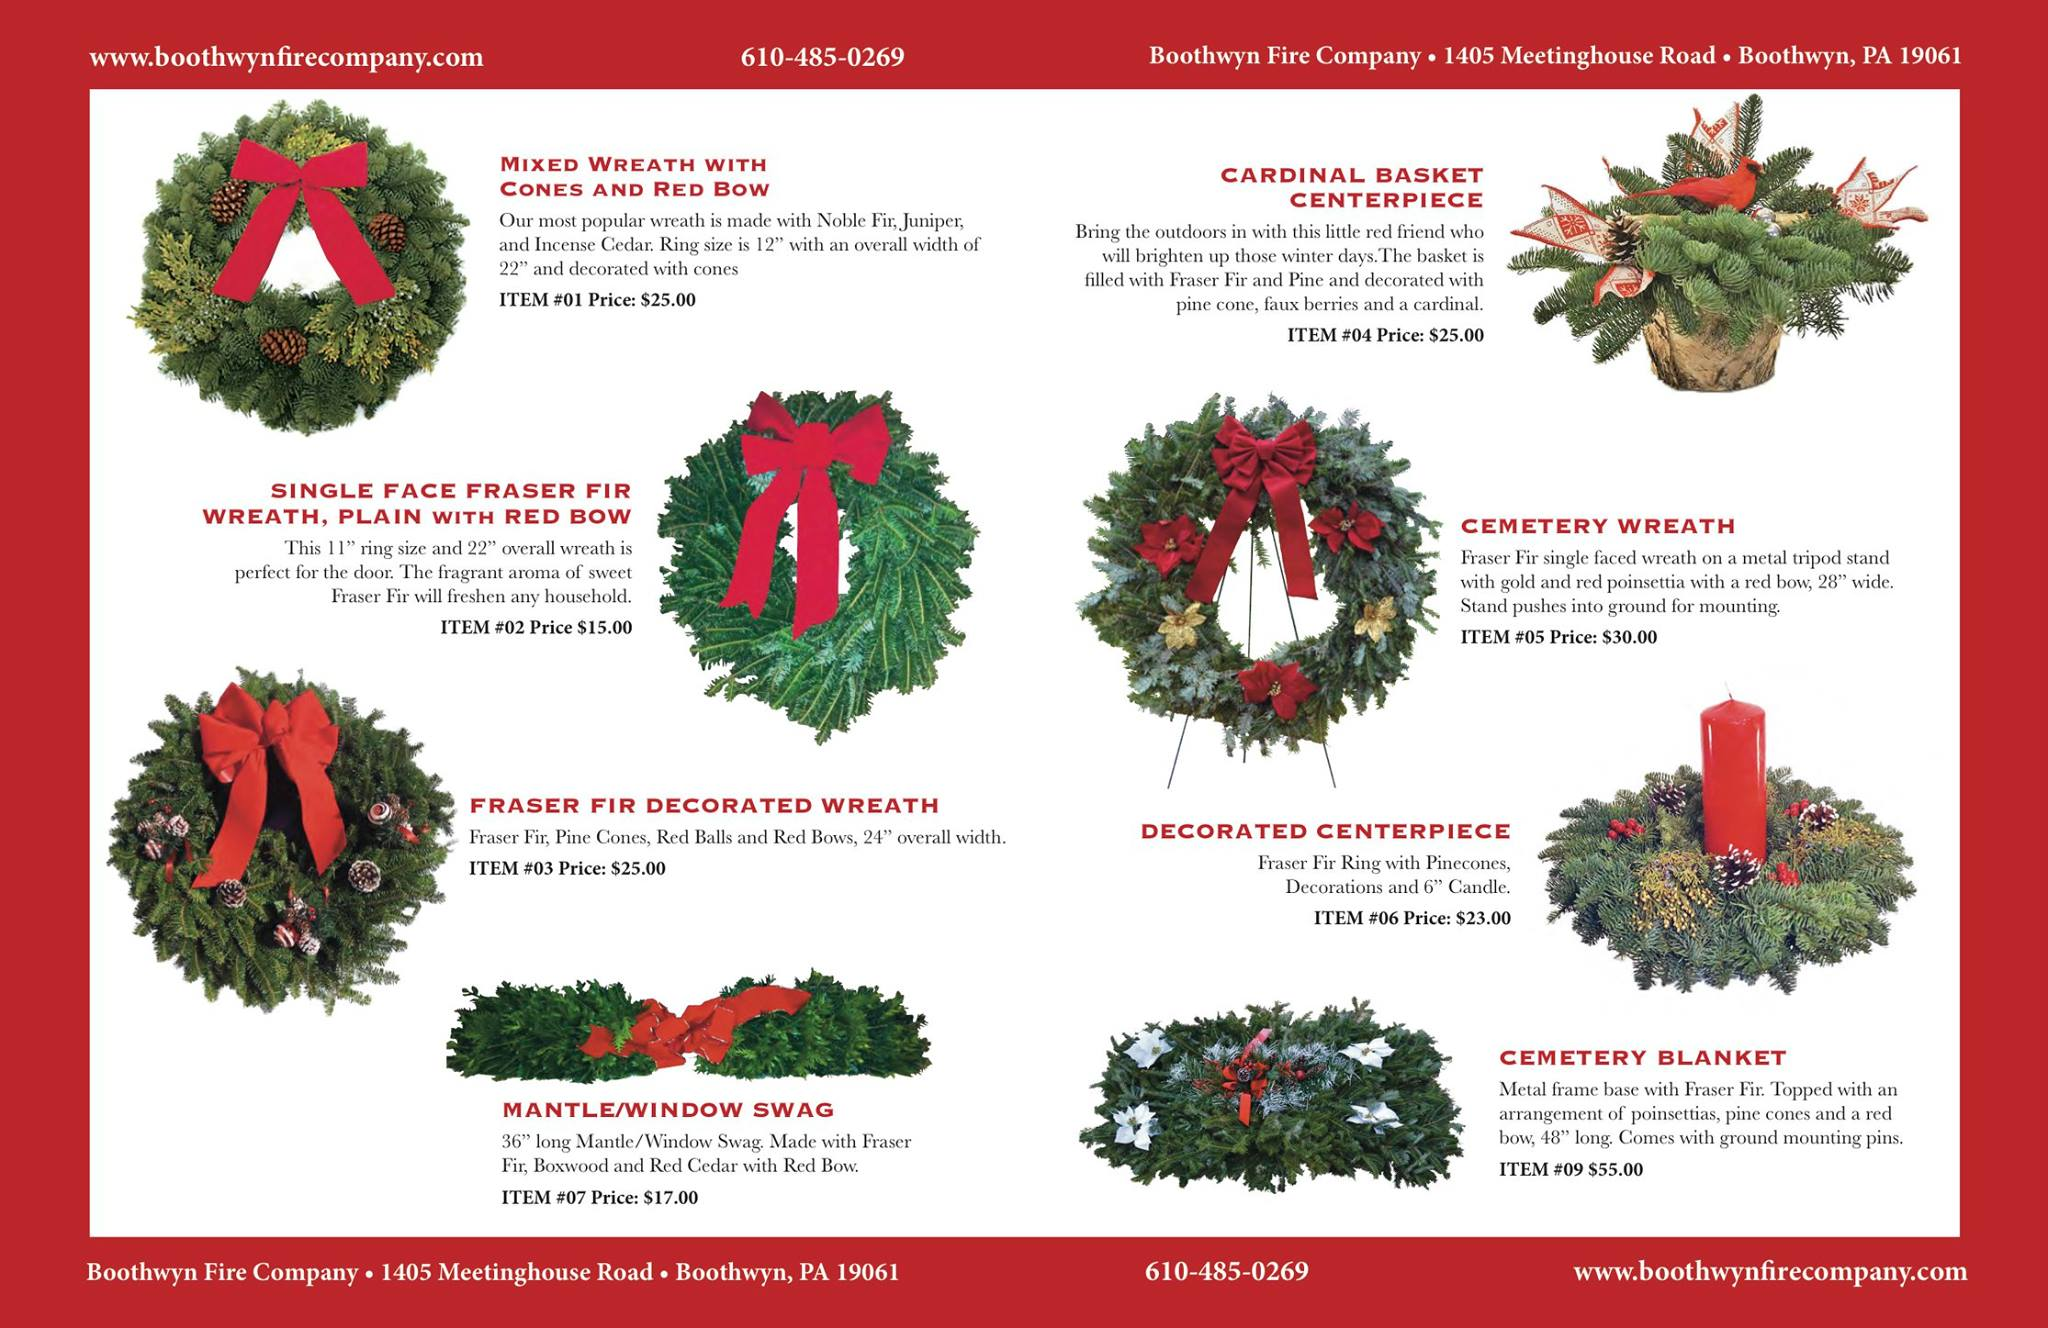 its that time of year again our holiday wreath fundraiser was just mailed out to all of our residents if youve ordered in the past we appreciate your